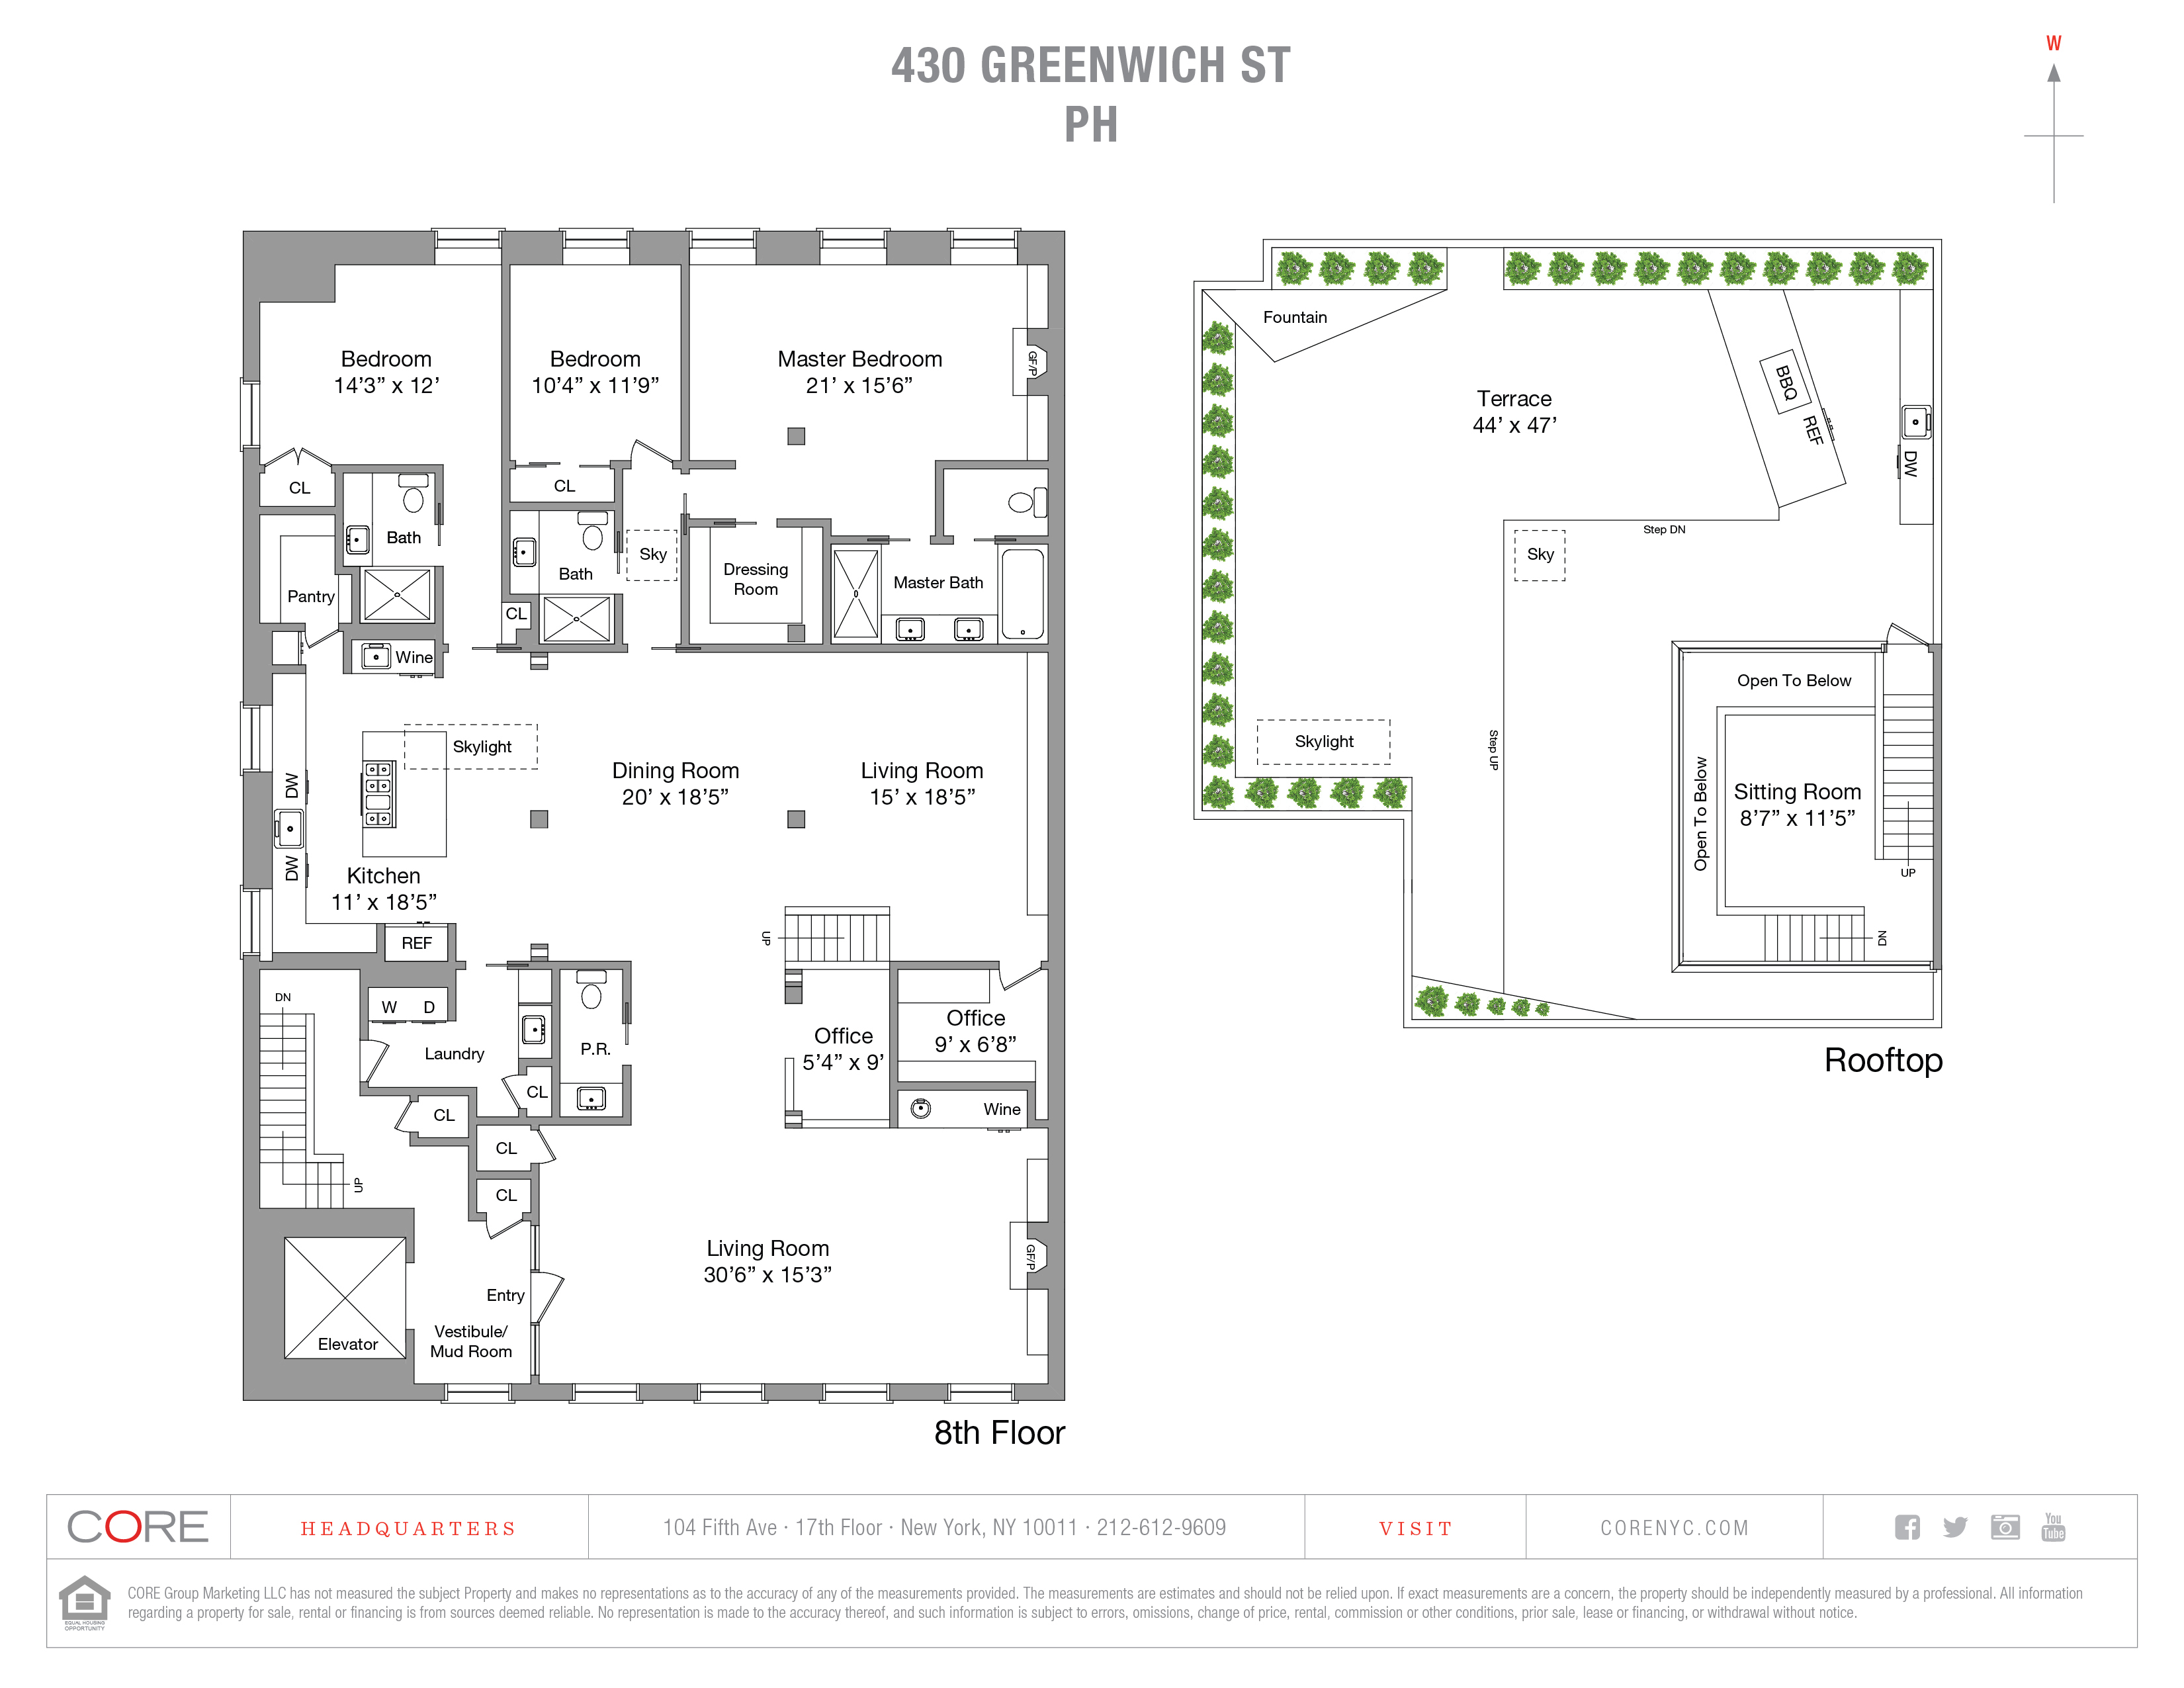 430 Greenwich St. PENTHOUSE, New York, NY 10013